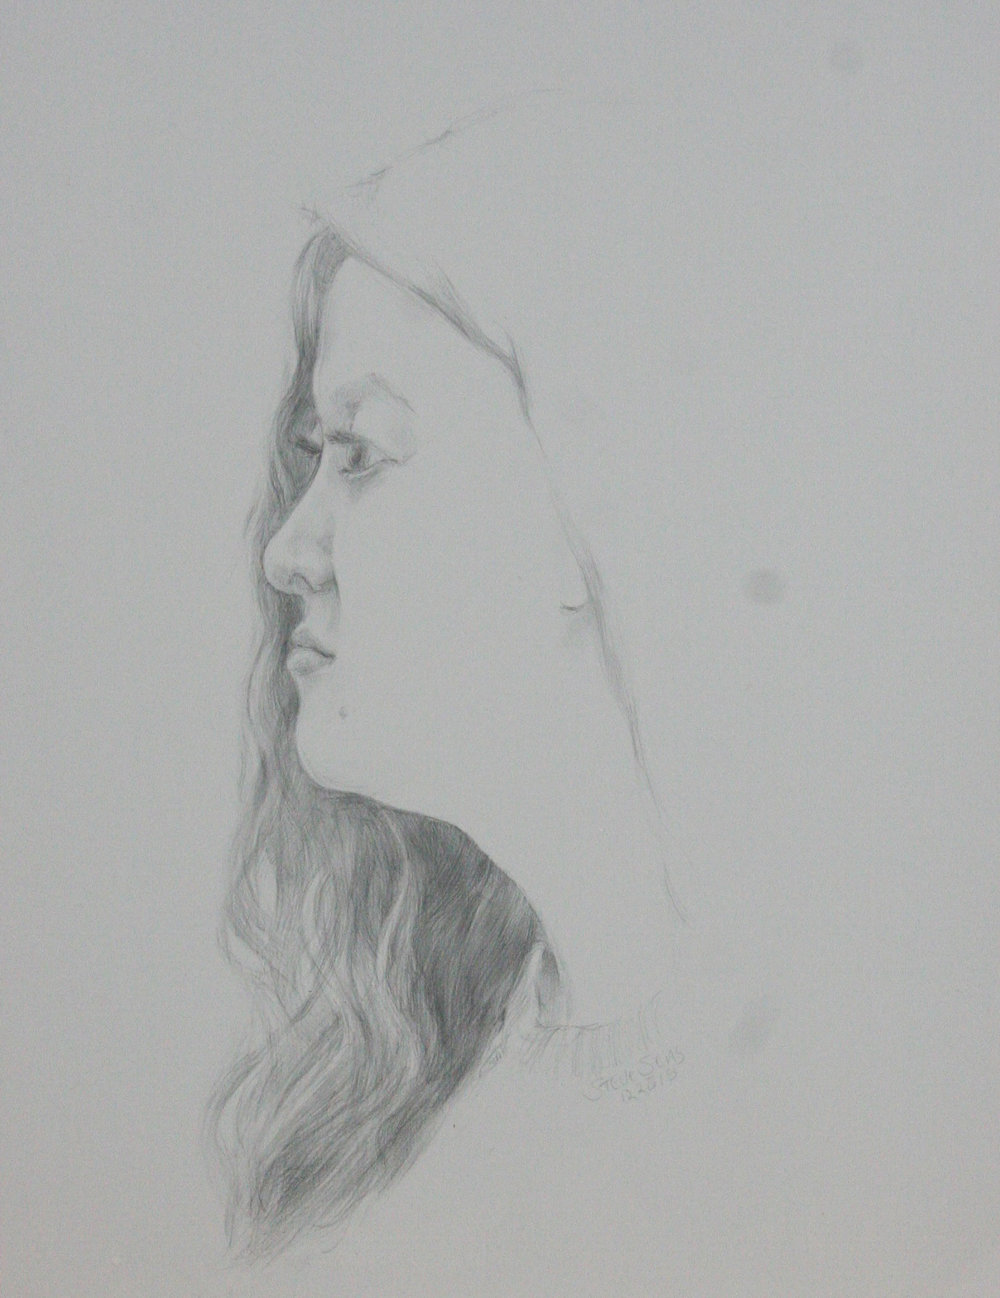 Steve Sens did this silverpoint.